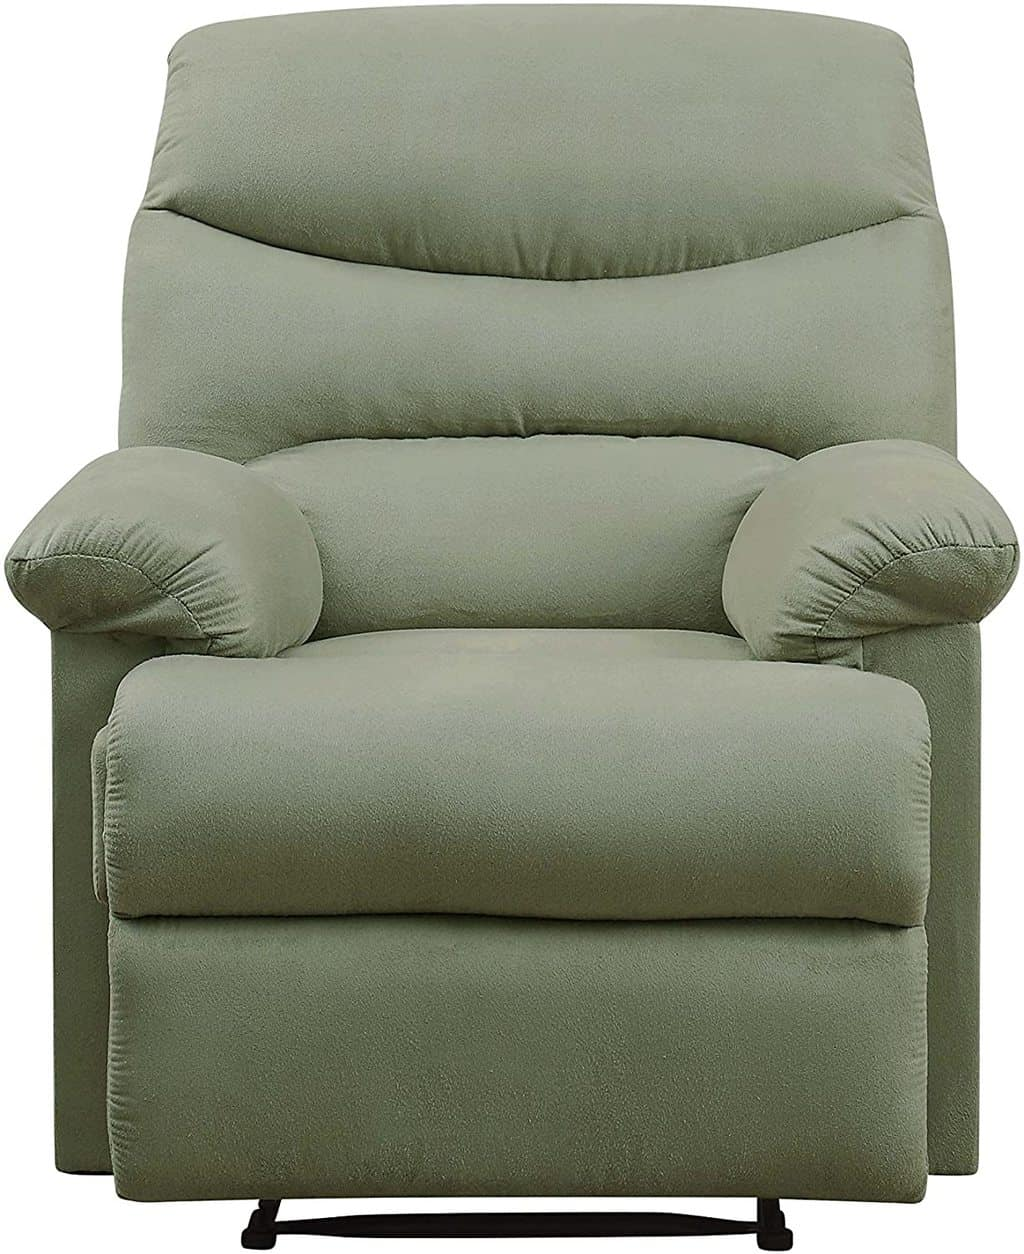 17. ACME Recliner Chair Sage Microfiber